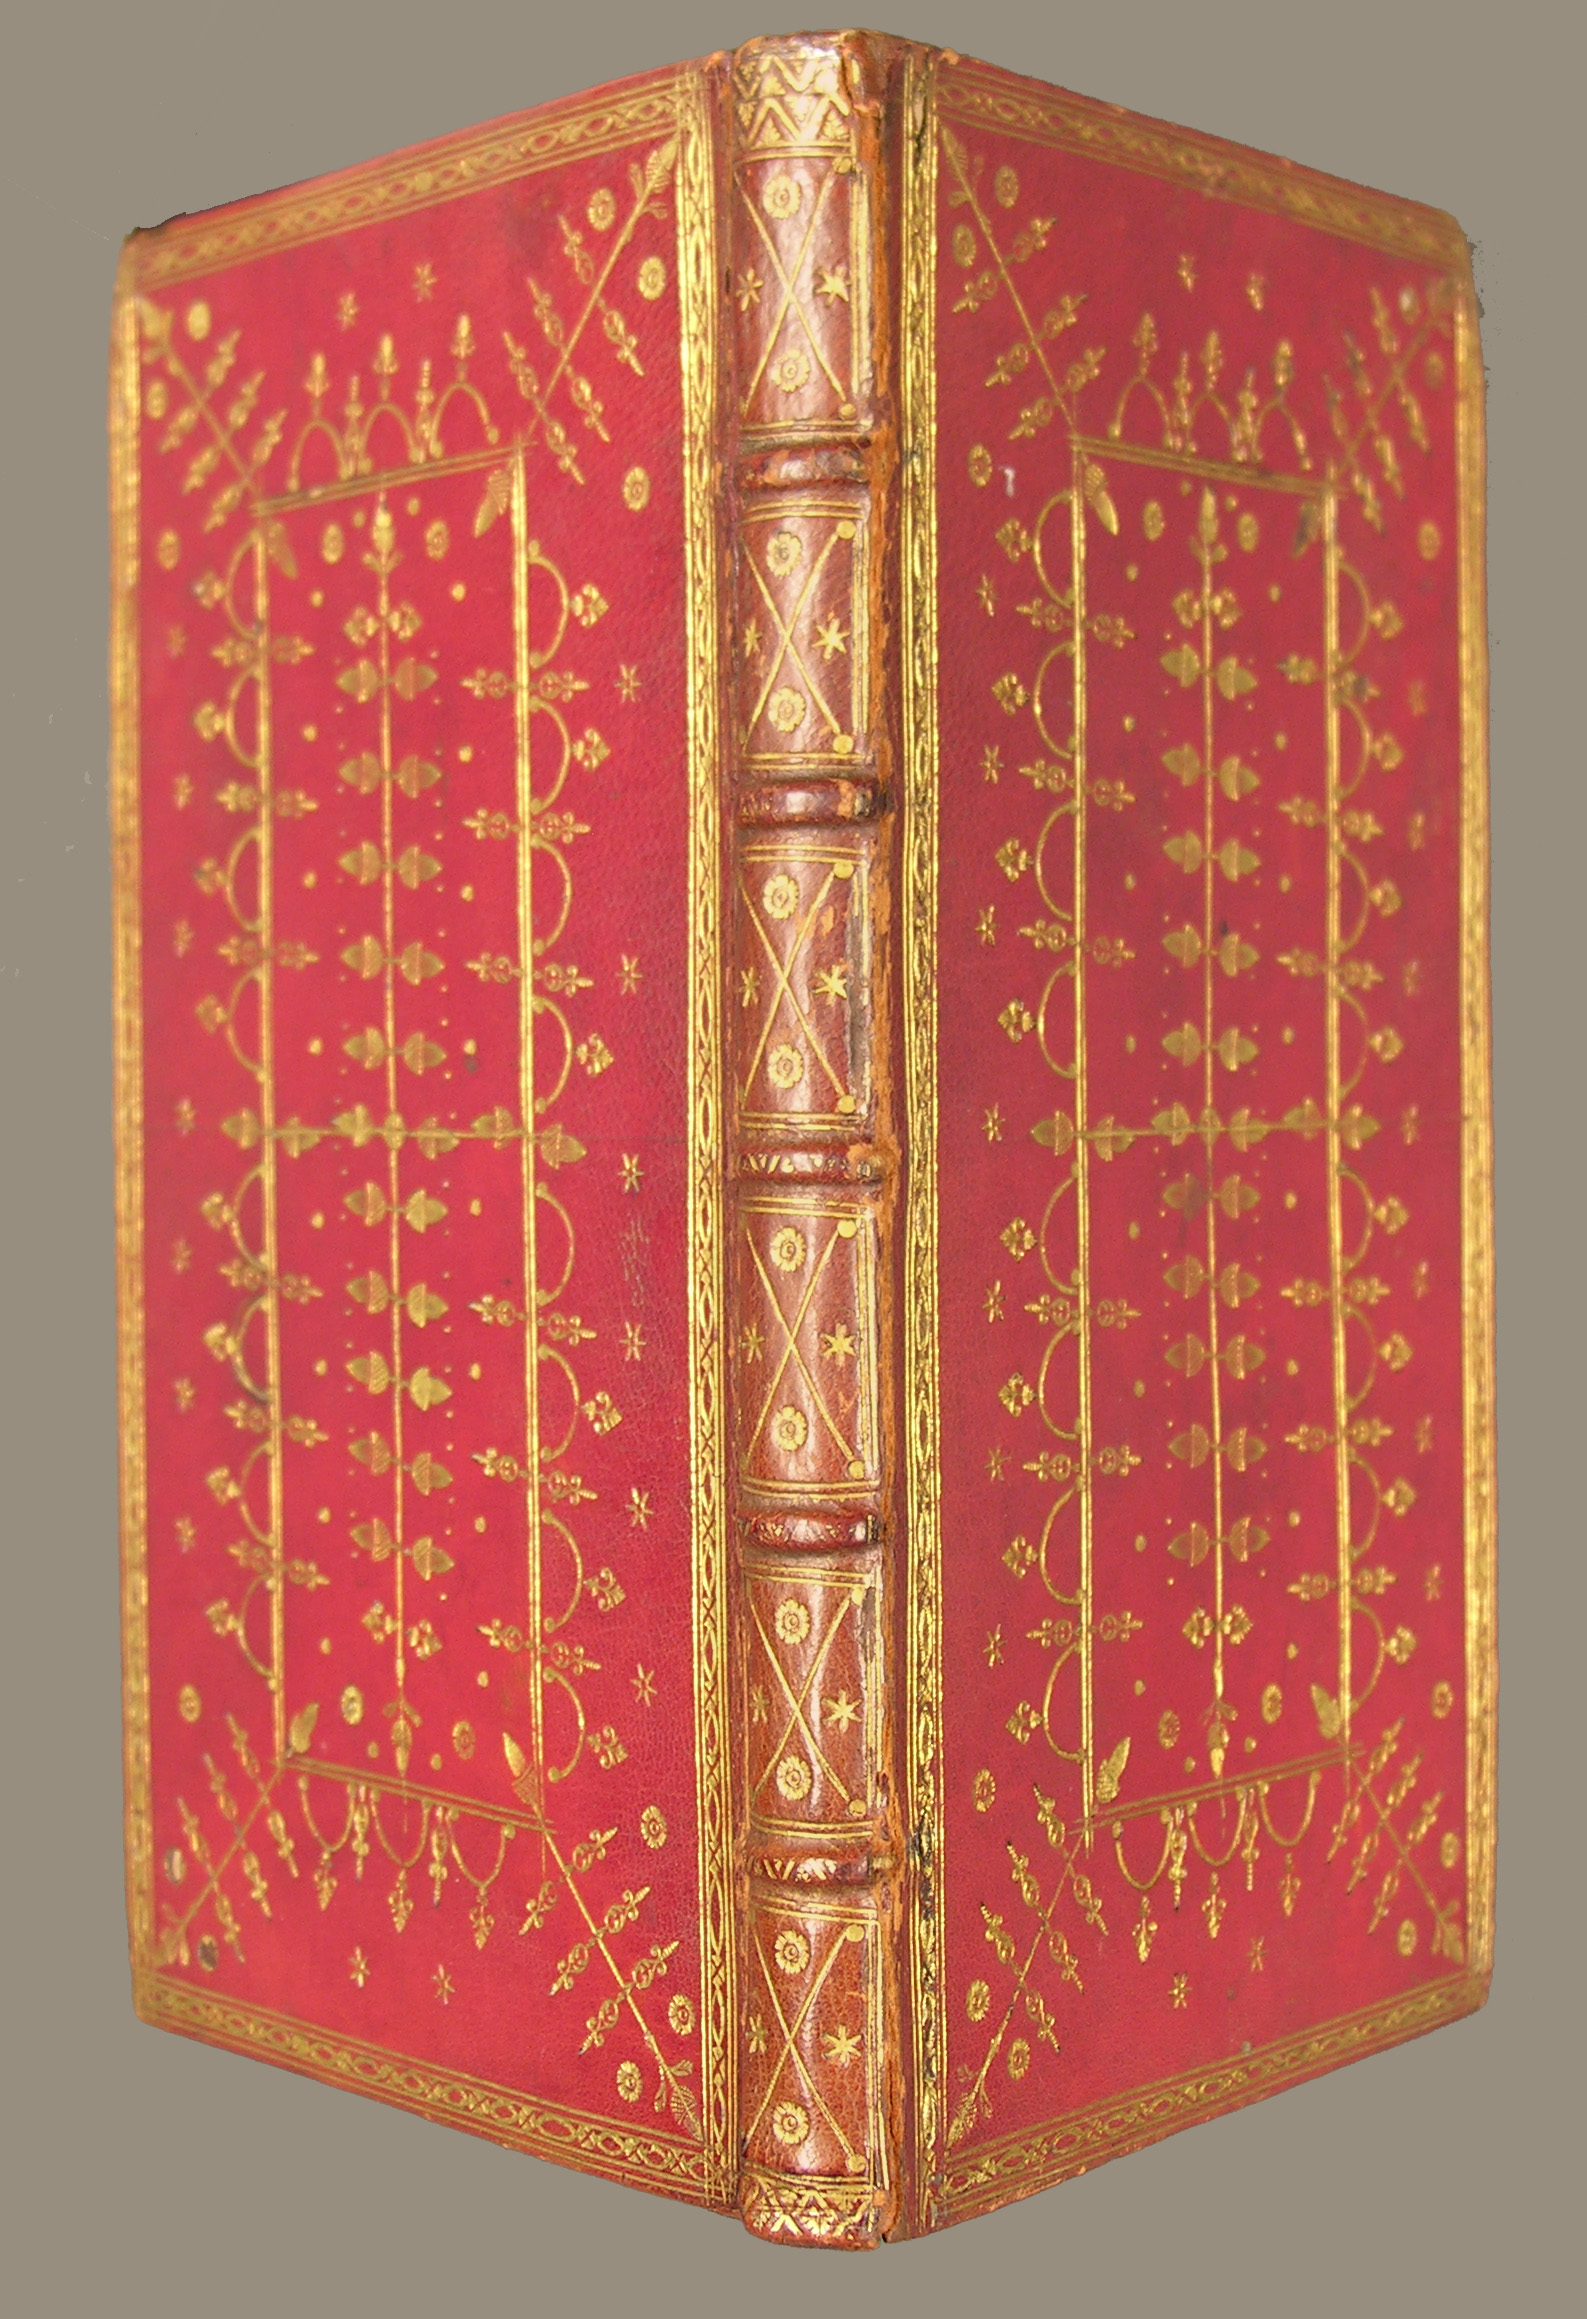 """Binding of """"The Charter and Statutes,"""" printed in 1736 in Williamsburg by William Parks"""